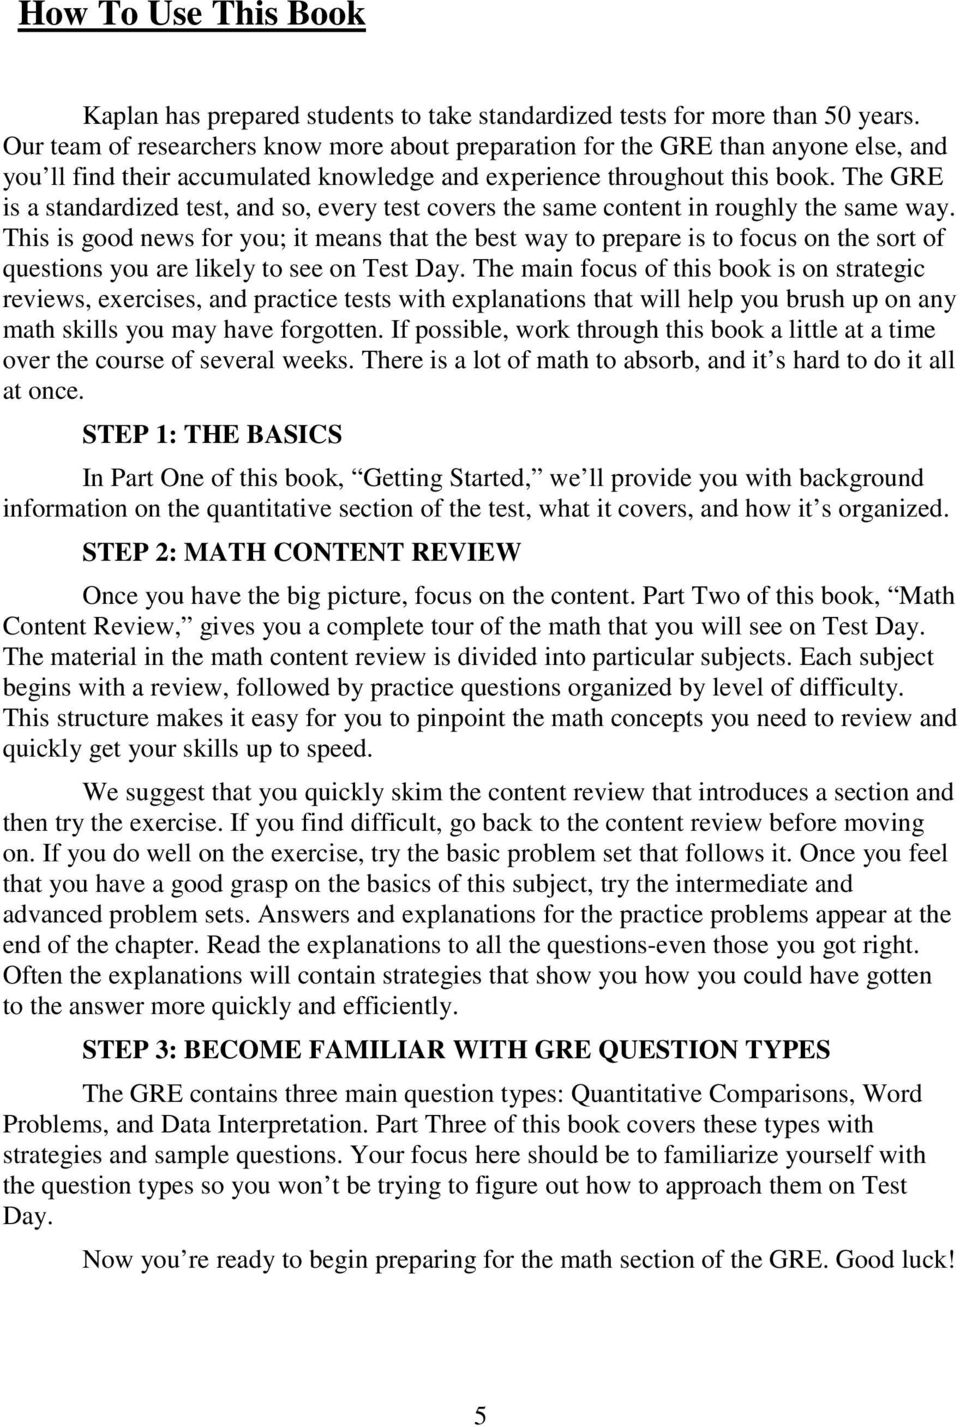 Gre exam math workbook seventh edition pdf the gre is a standardized test and so every test covers the same content fandeluxe Gallery